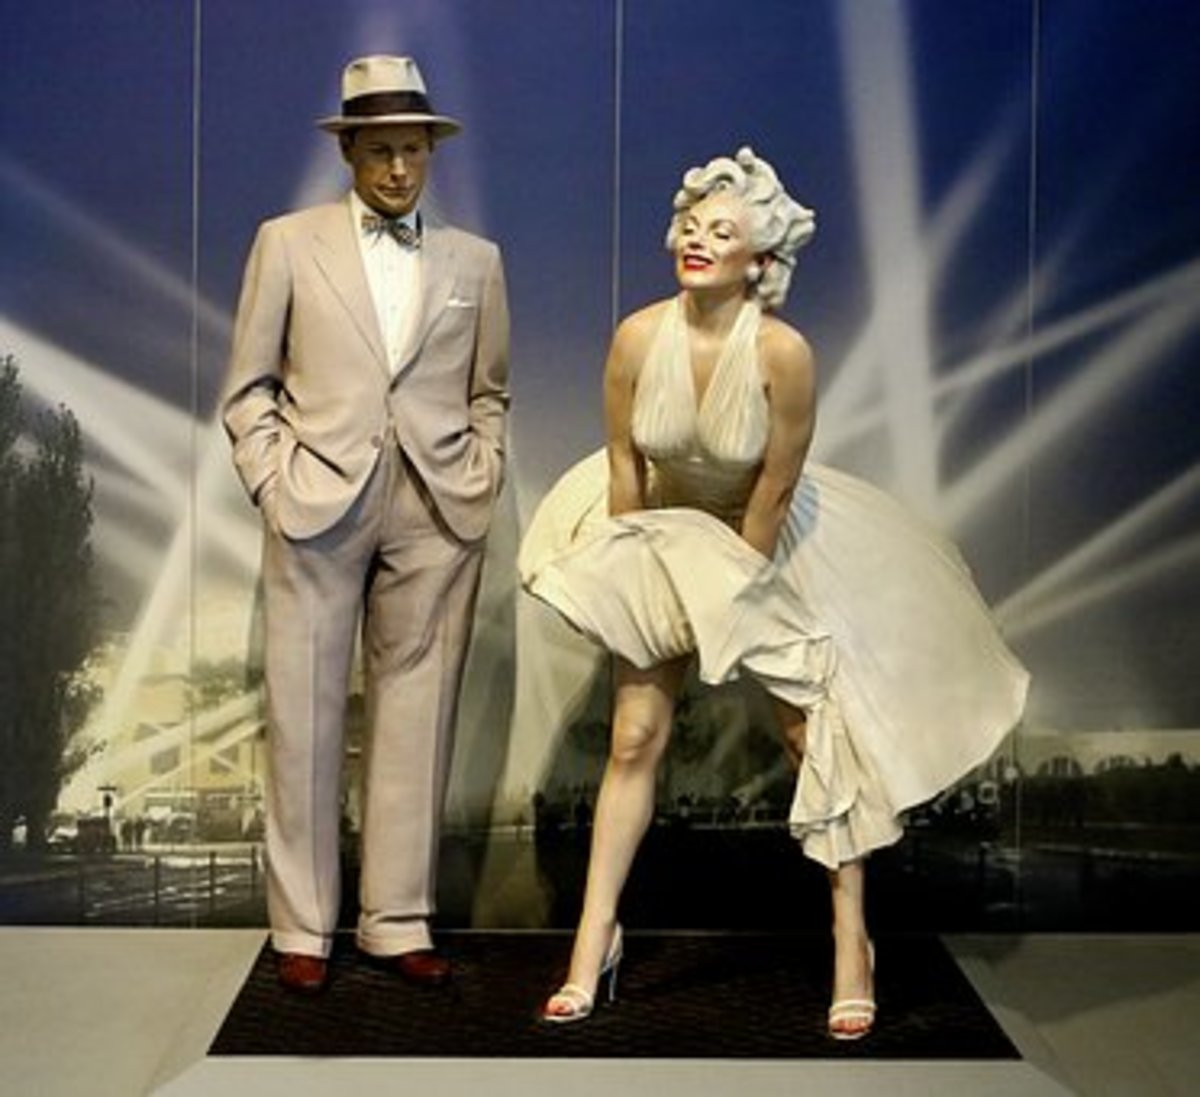 Statue of Marilyn Monroe as she appeared in the 1955 movie, The Seven-Year Itch.